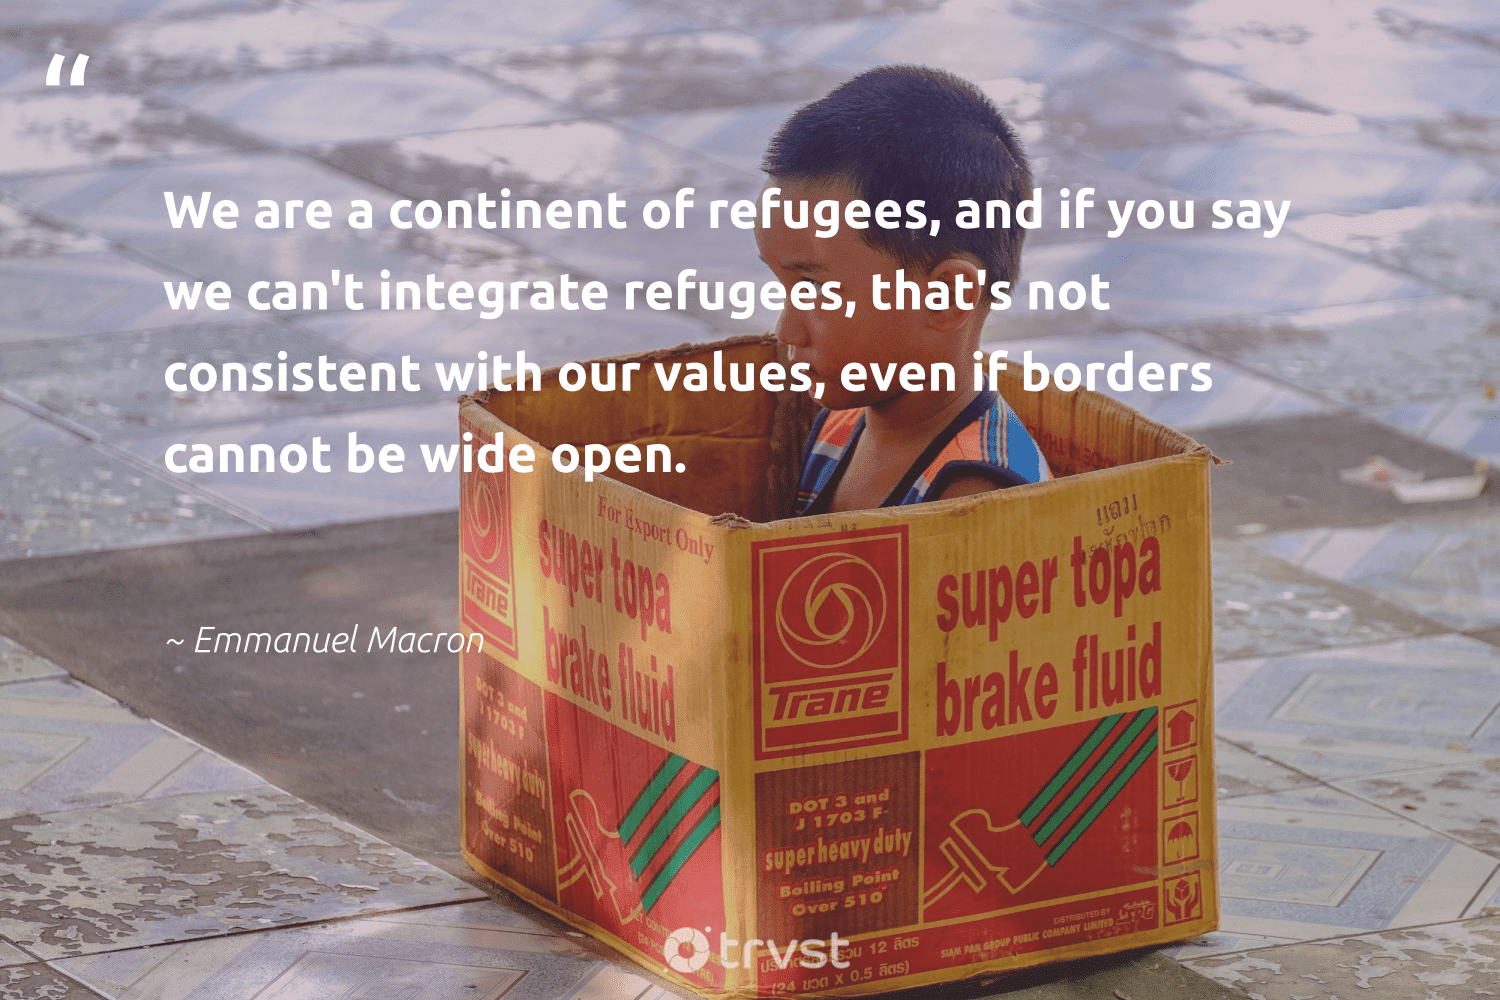 """""""We are a continent of refugees, and if you say we can't integrate refugees, that's not consistent with our values, even if borders cannot be wide open.""""  - Emmanuel Macron #trvst #quotes #refugees #refugeeswelcome #equalopportunity #inclusion #dosomething #syria #weareallone #equalrights #bethechange #refugee"""